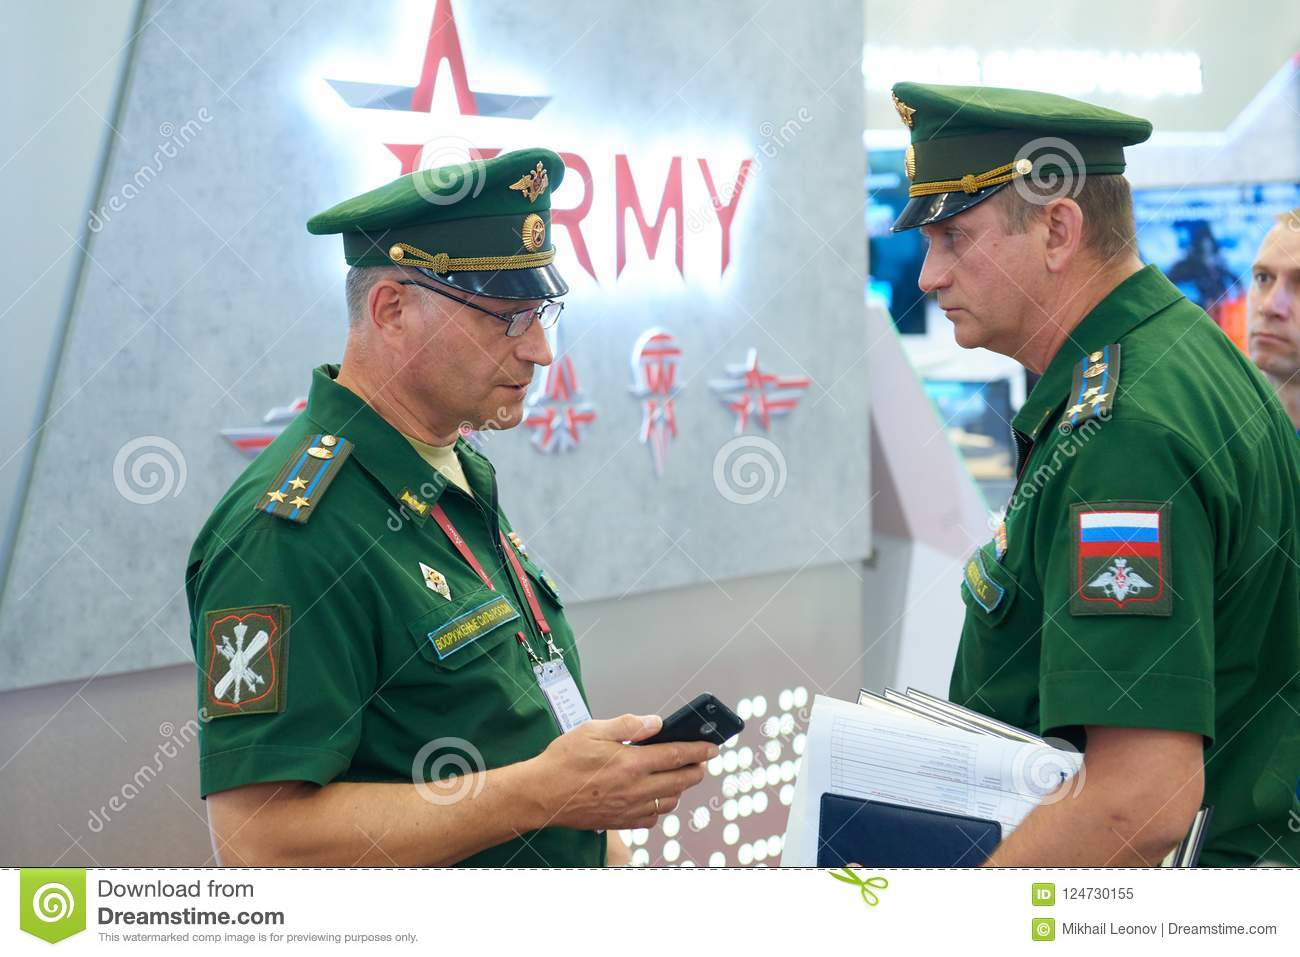 KUBINKA, RUSSIA, AUG 24, 2018: Two Russian Army Officers In